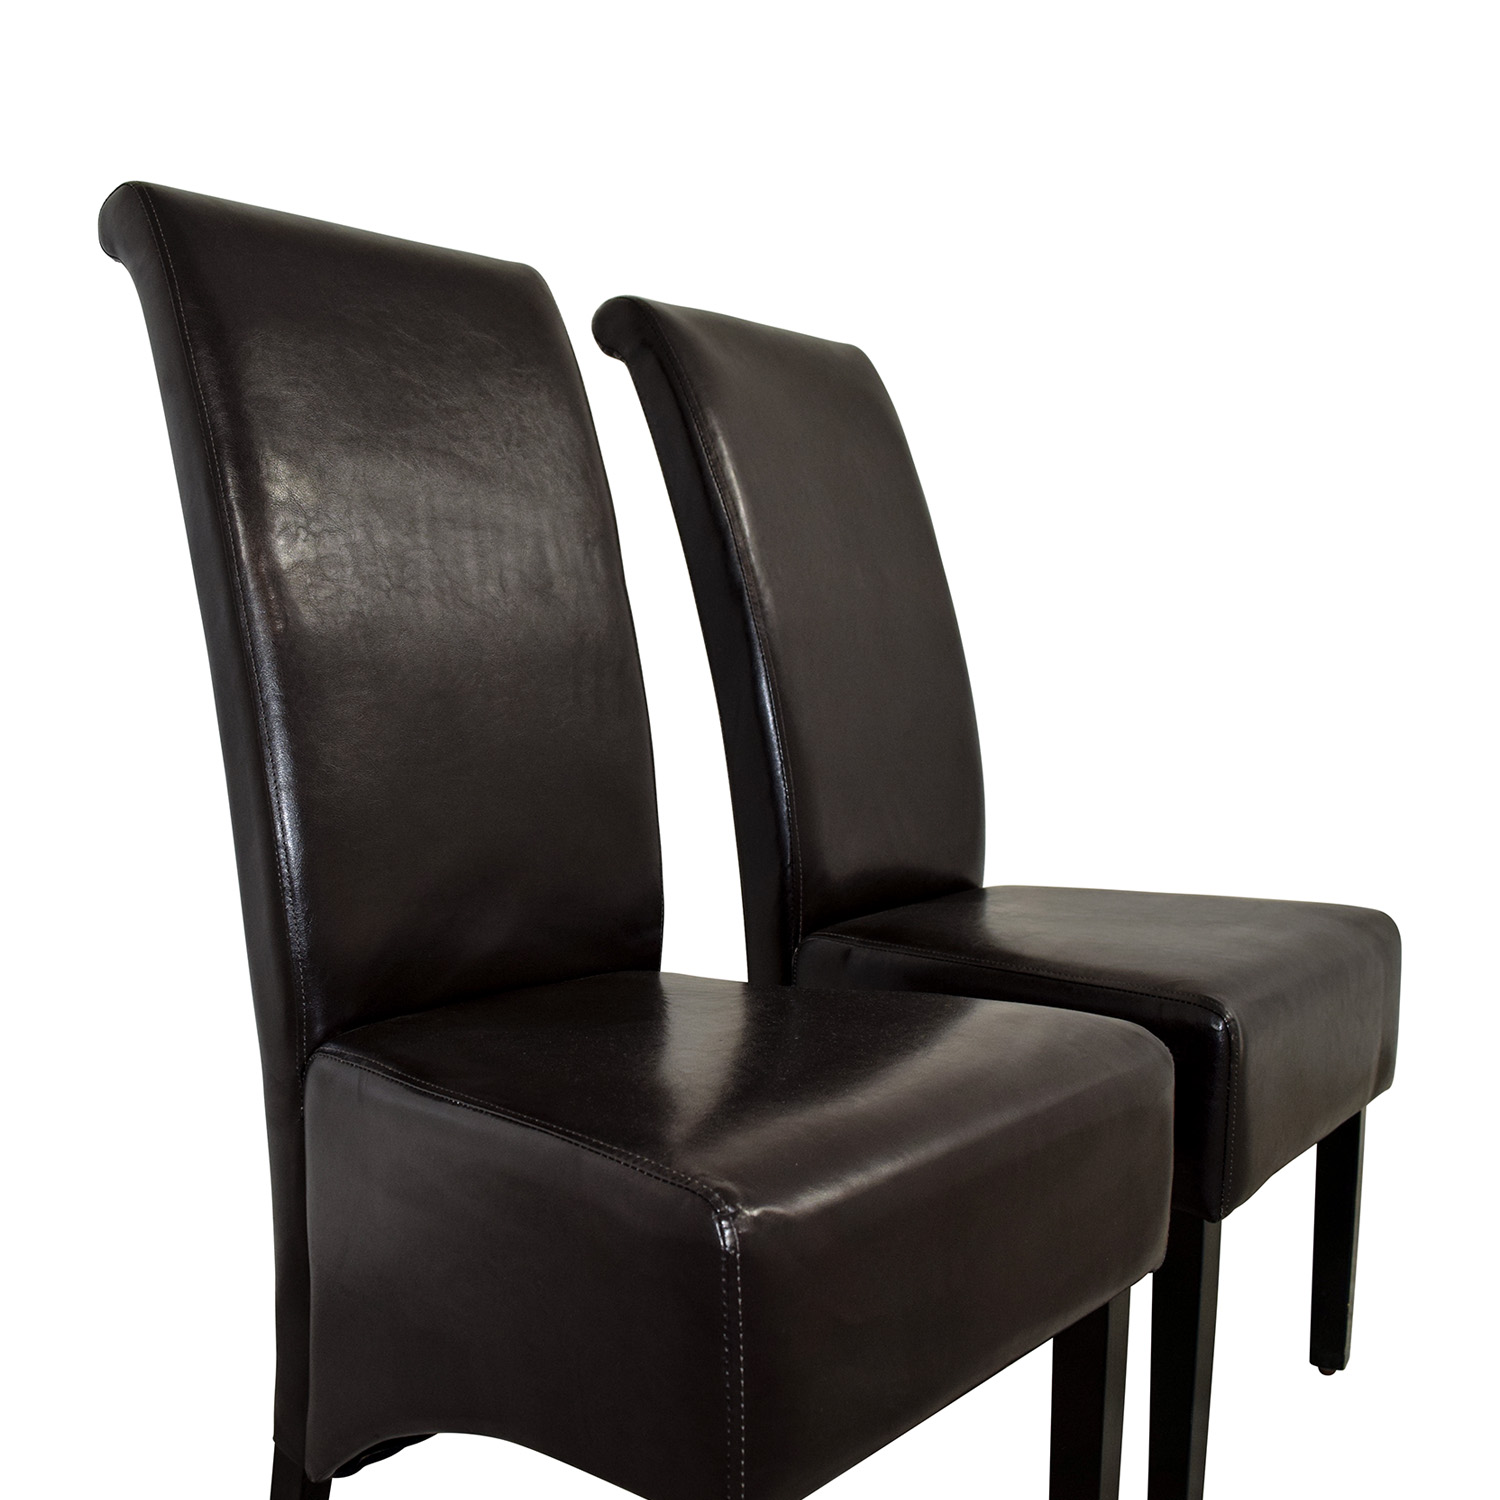 Pleasant 90 Off Padded Brown Leatherette High Back Dining Chairs Chairs Dailytribune Chair Design For Home Dailytribuneorg